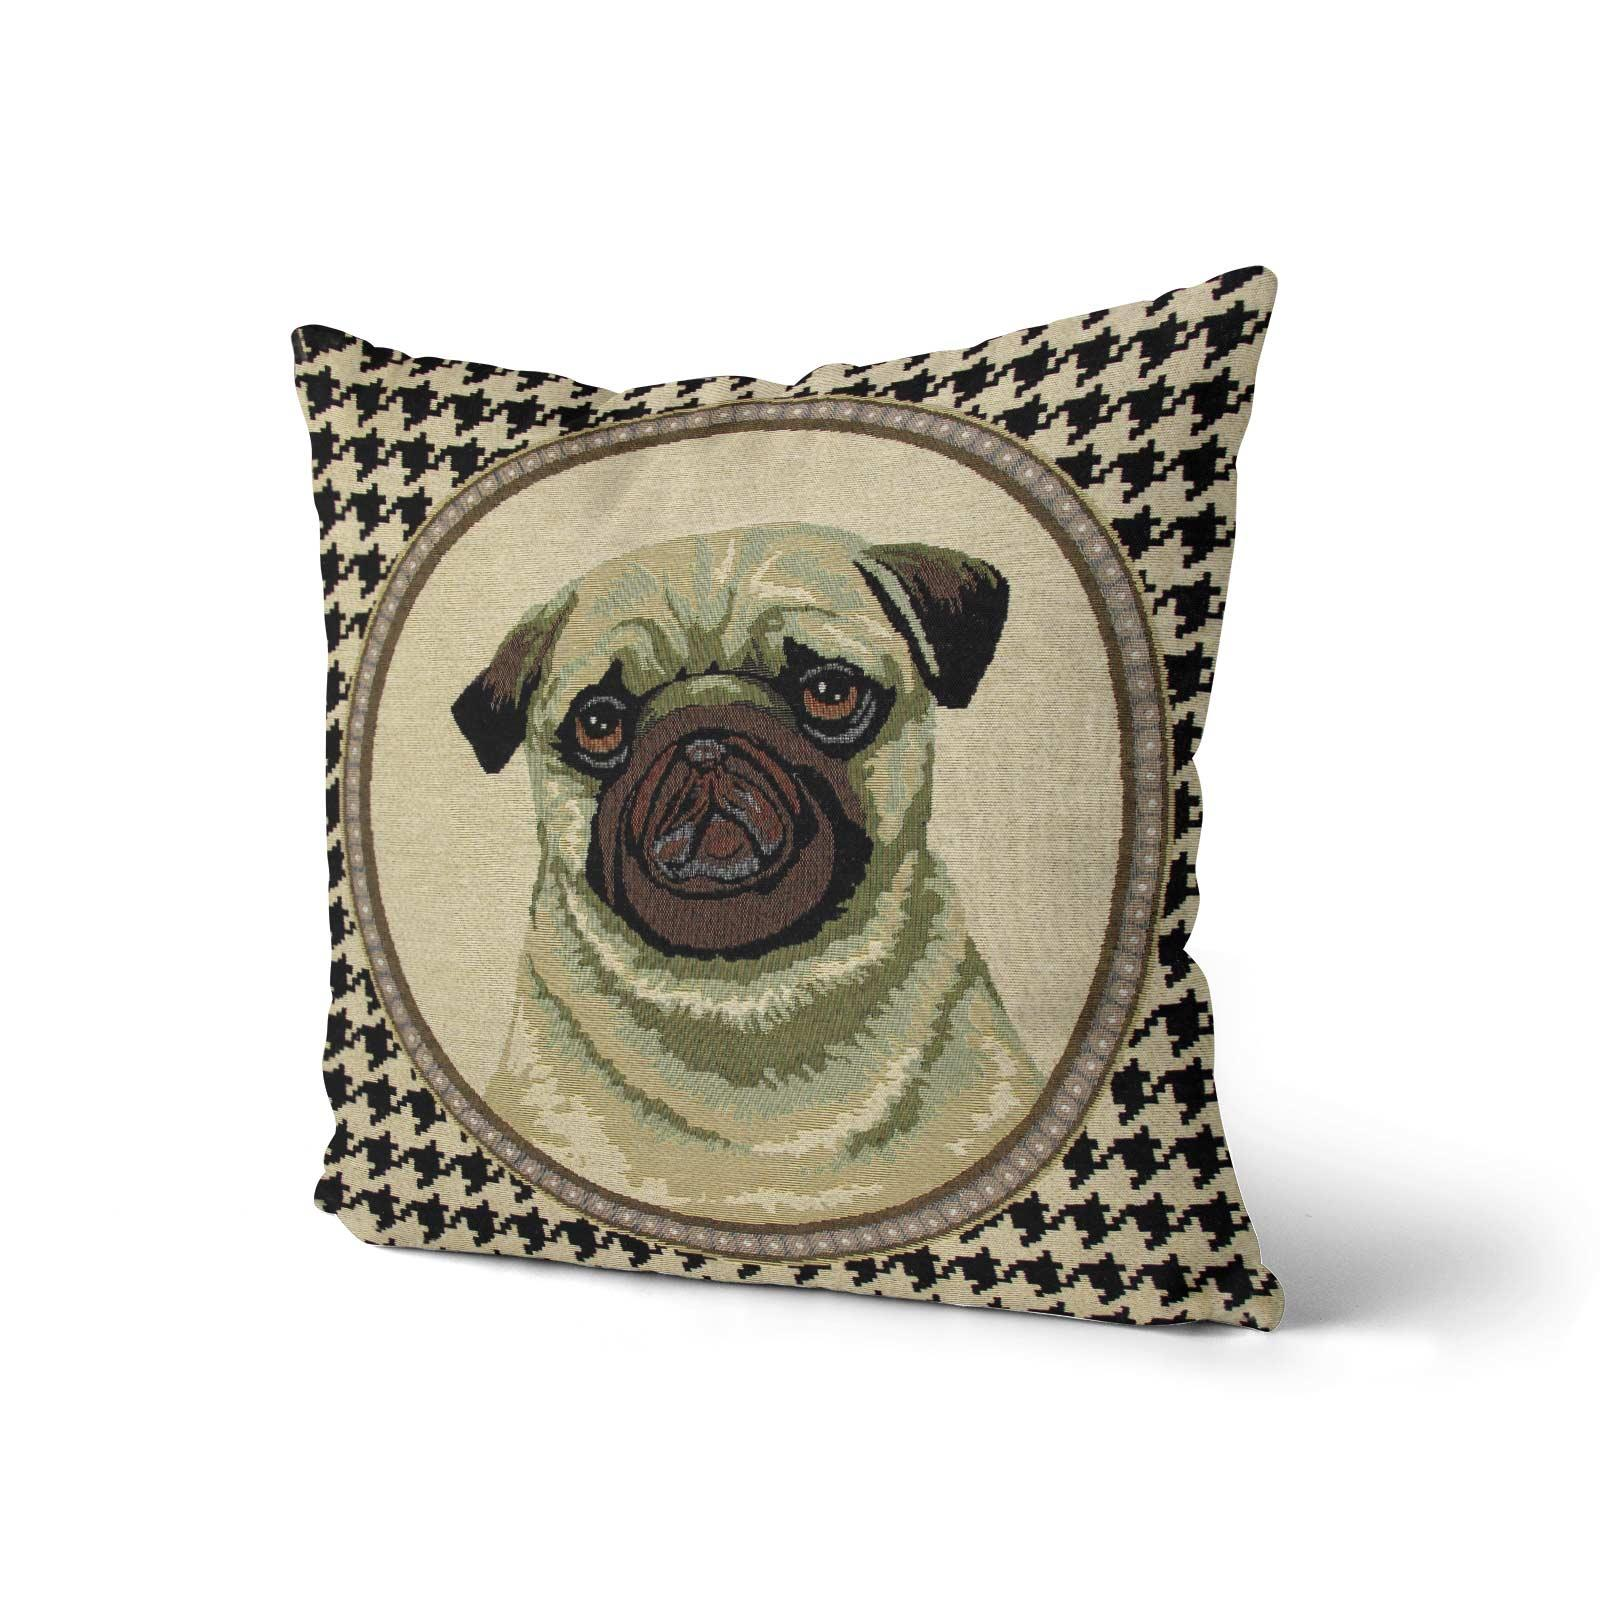 Tapestry-Cushion-Covers-Vintage-Pillow-Cover-Collection-18-034-45cm-Filled-Cushions thumbnail 130